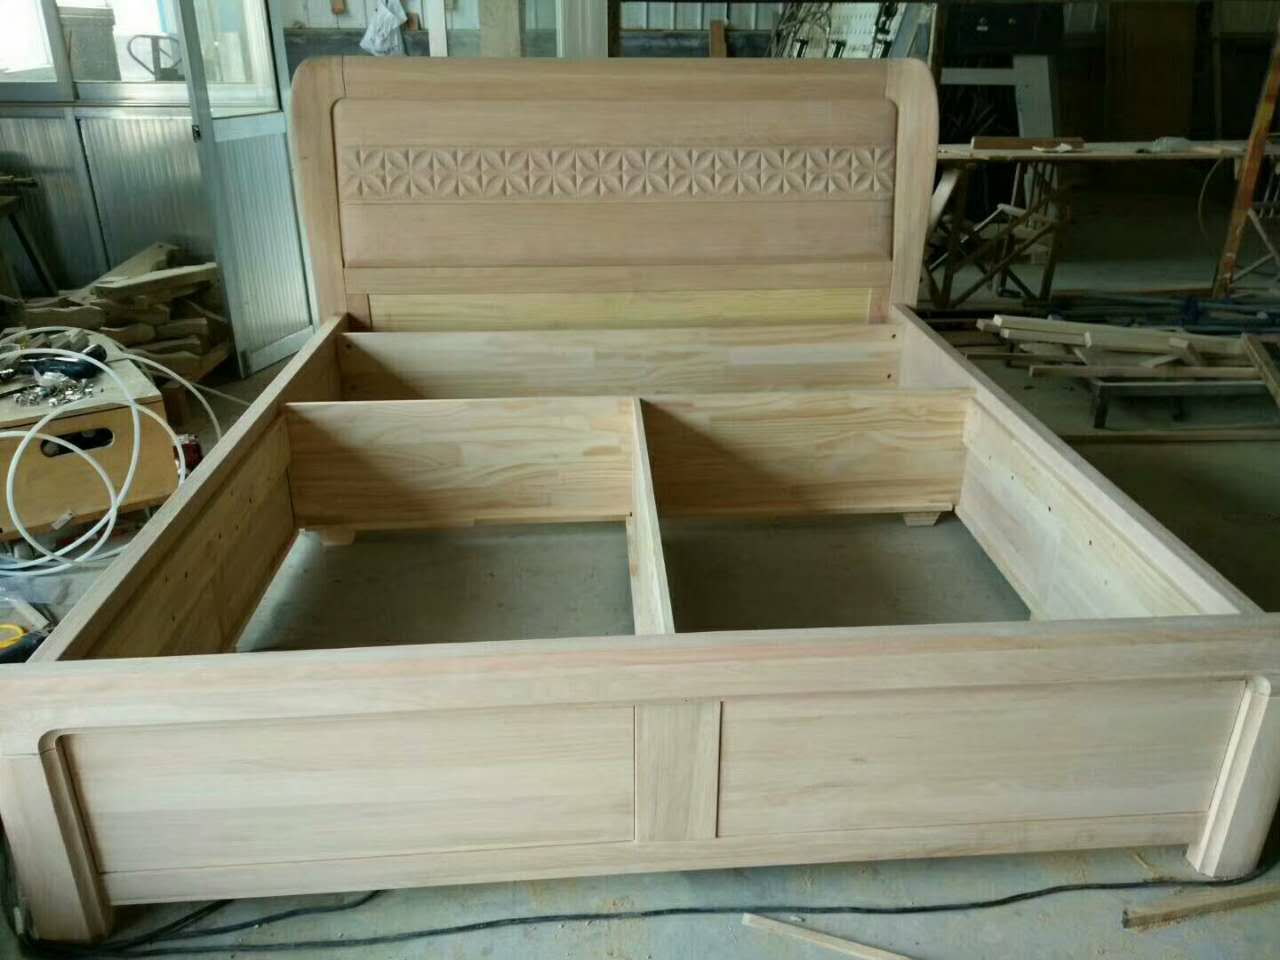 Zhucheng Yong Lian wood, white oak, red oak, solid wood bed, 1.8 meters double bed, Golden Teak, American style Chinese style